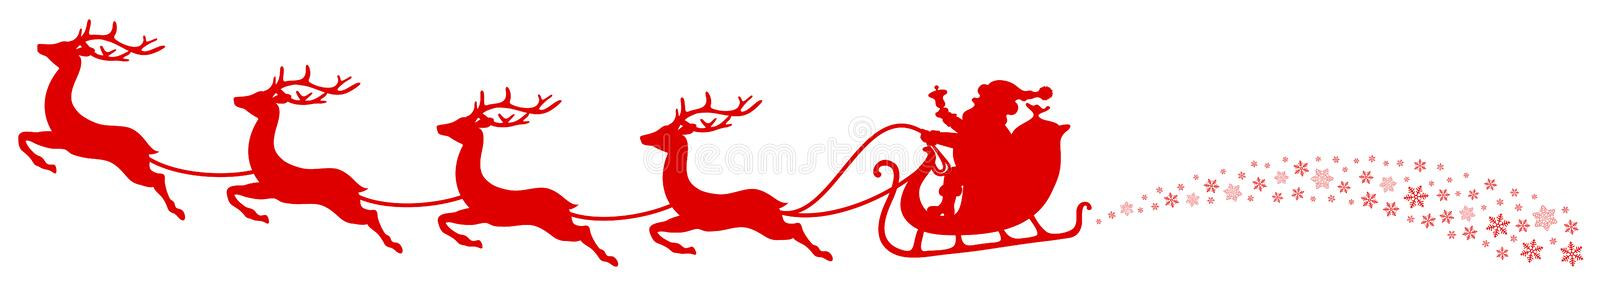 Natale orizzontale Sleigh Santa And Flying Reindeers Swirl rossa royalty illustrazione gratis